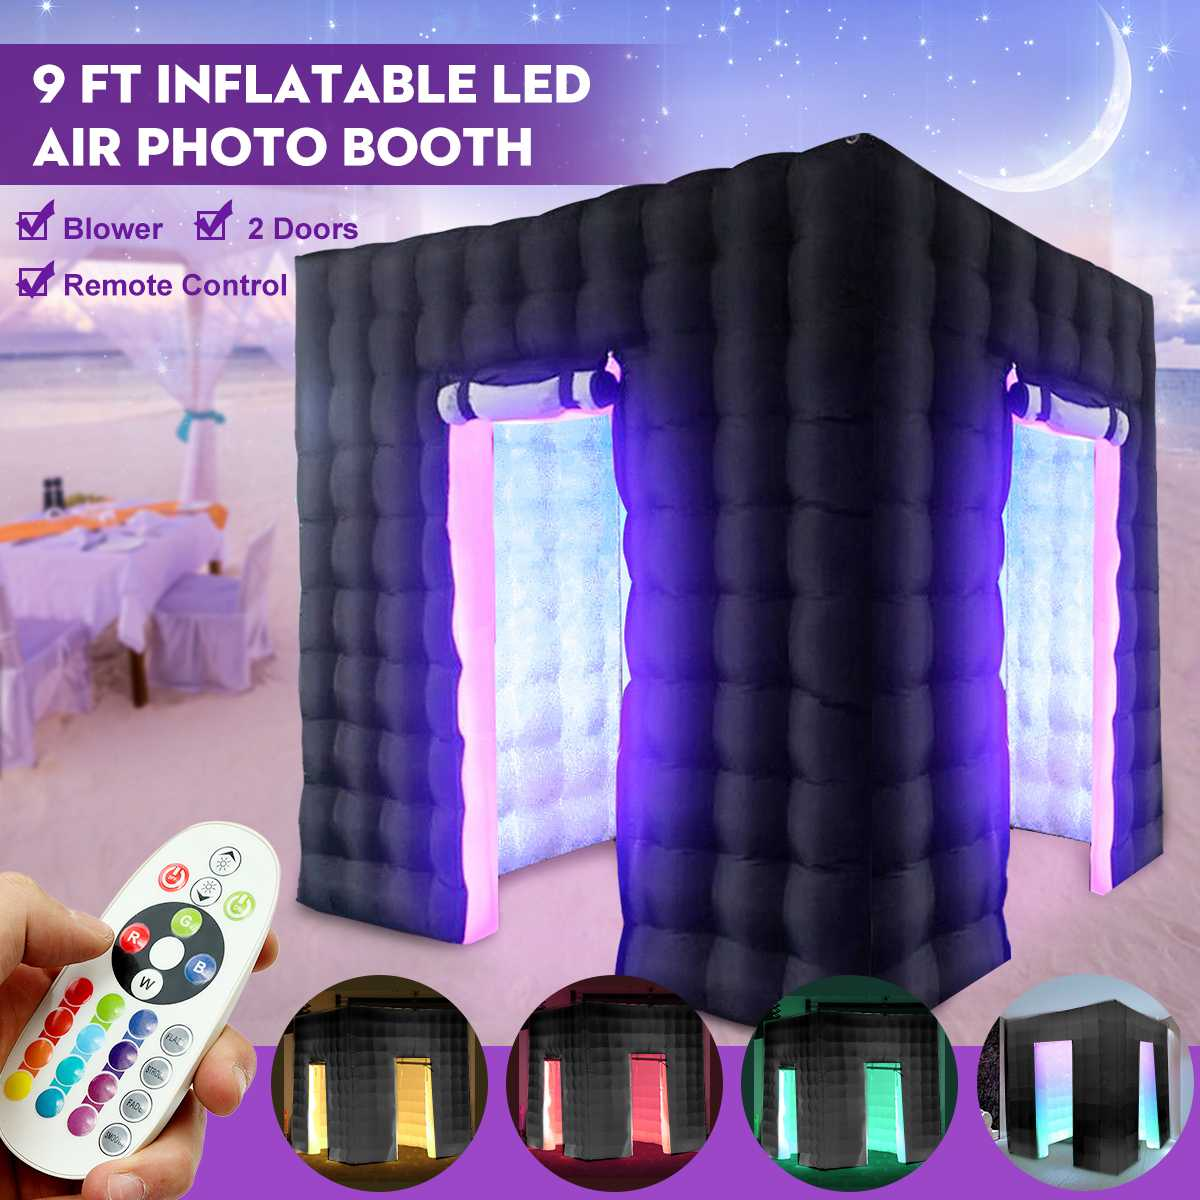 2.8x2.8x2.8 m gonflable Air cabine Photo professionnel gonflable rvb LED Photo cabine tente noir Double porte télécommande tente